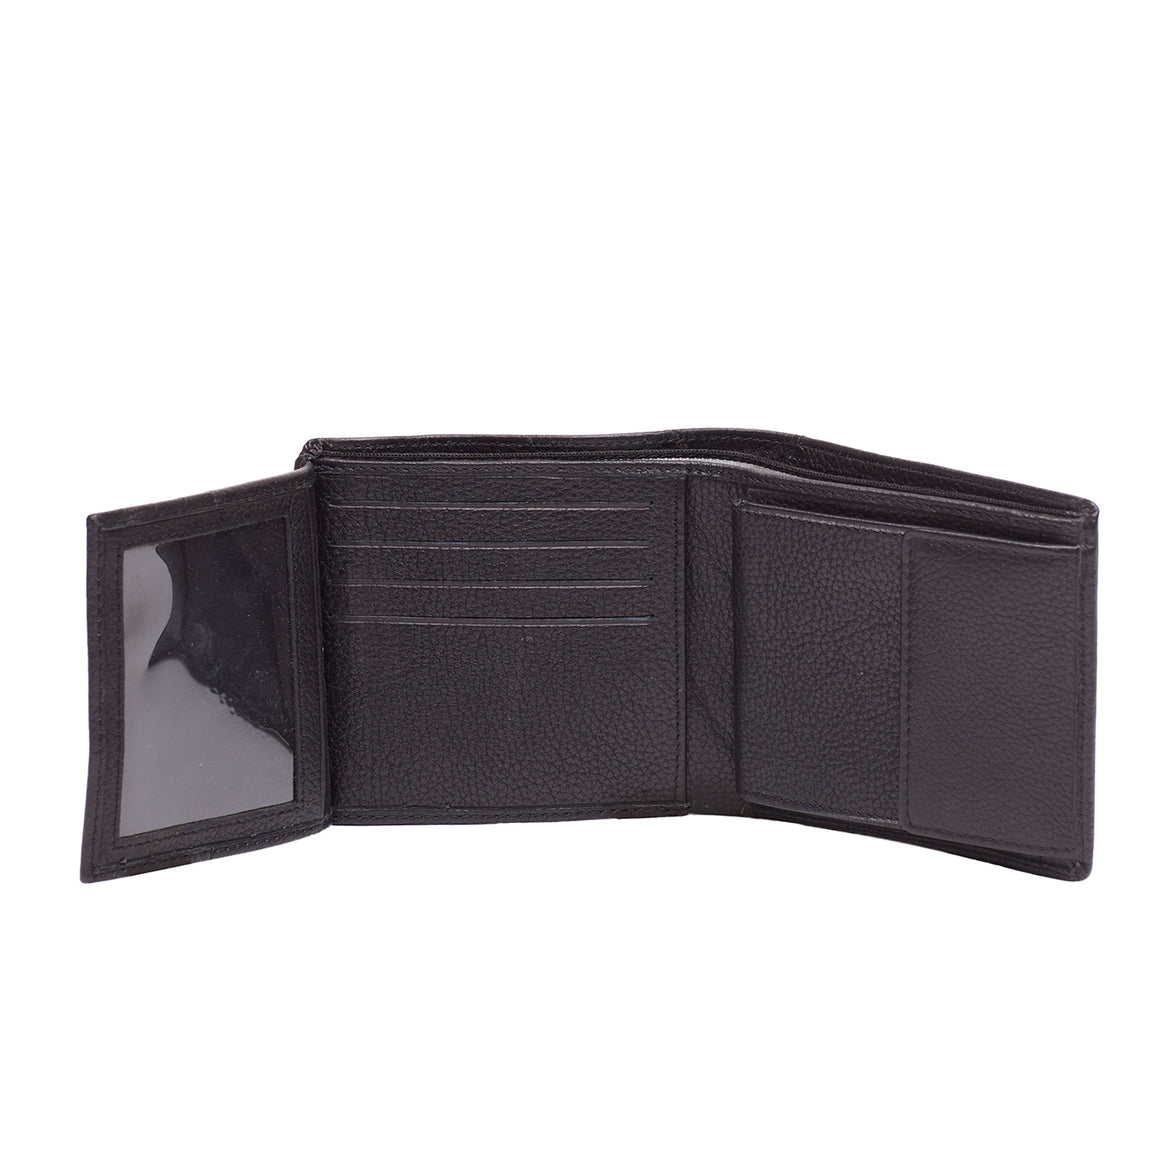 WT 0026 - TOHL LAMBRO MEN'S WALLET - CHARCOAL BLACK